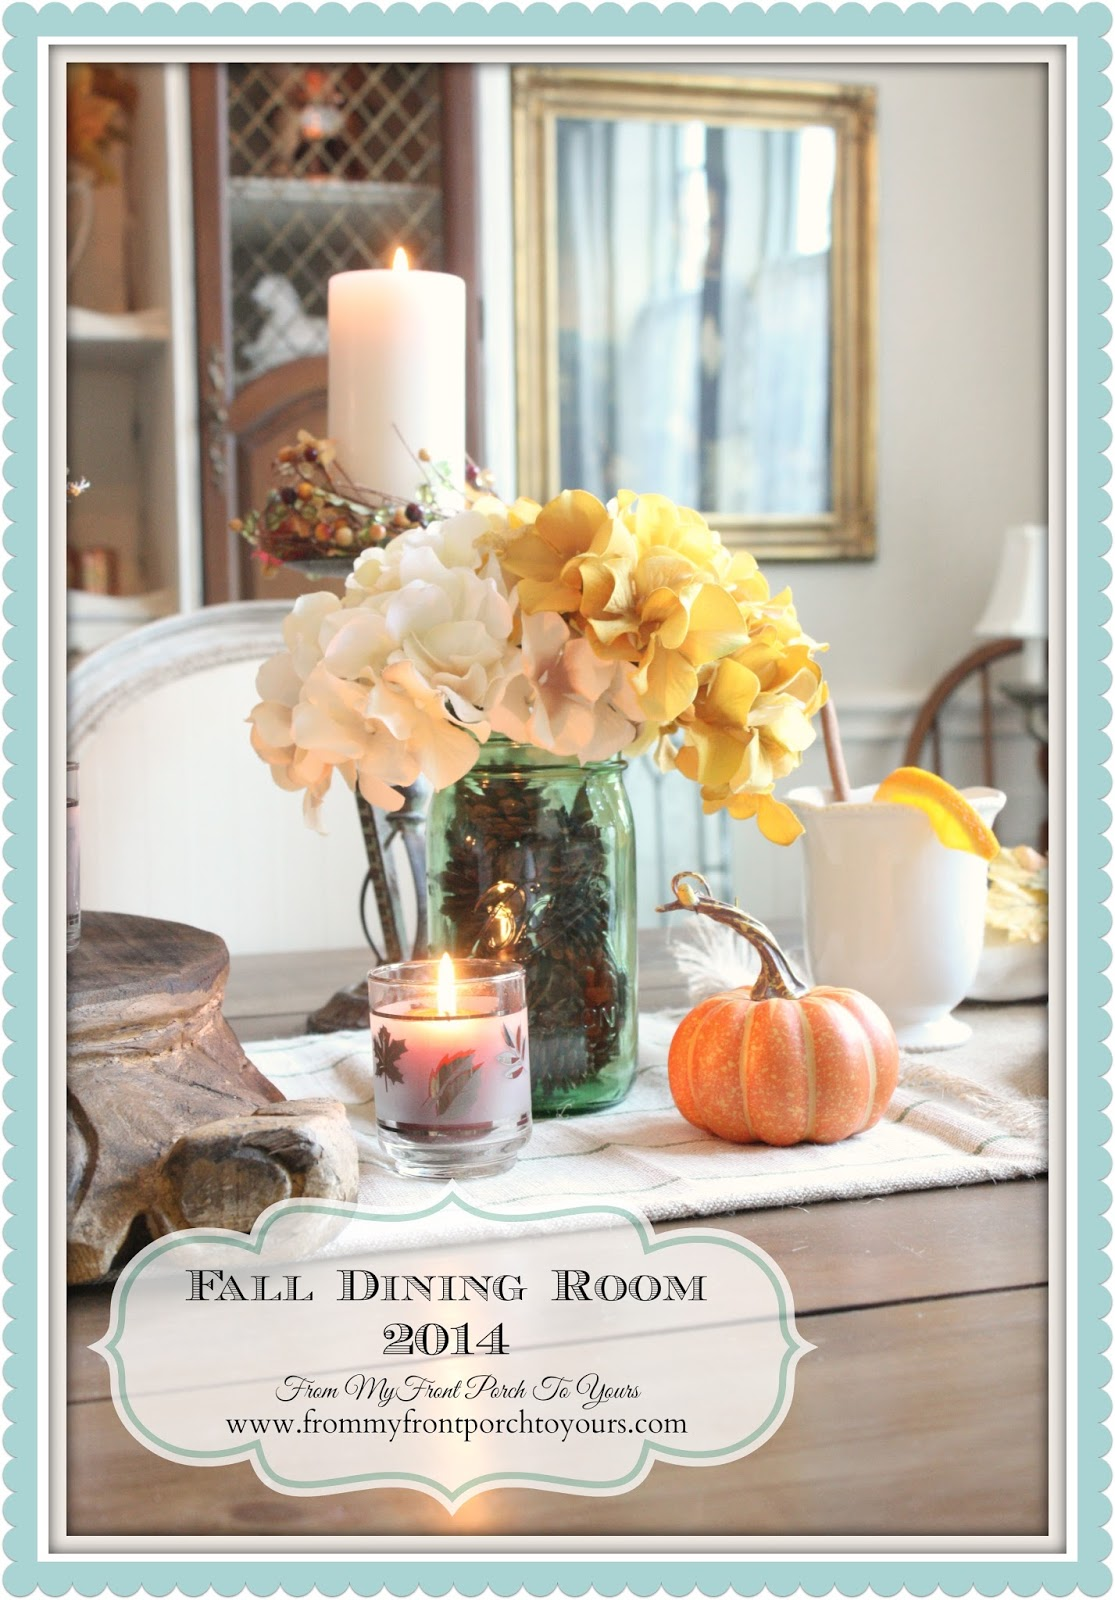 From My Front Porch To Yours- Fall Dining Room 2014